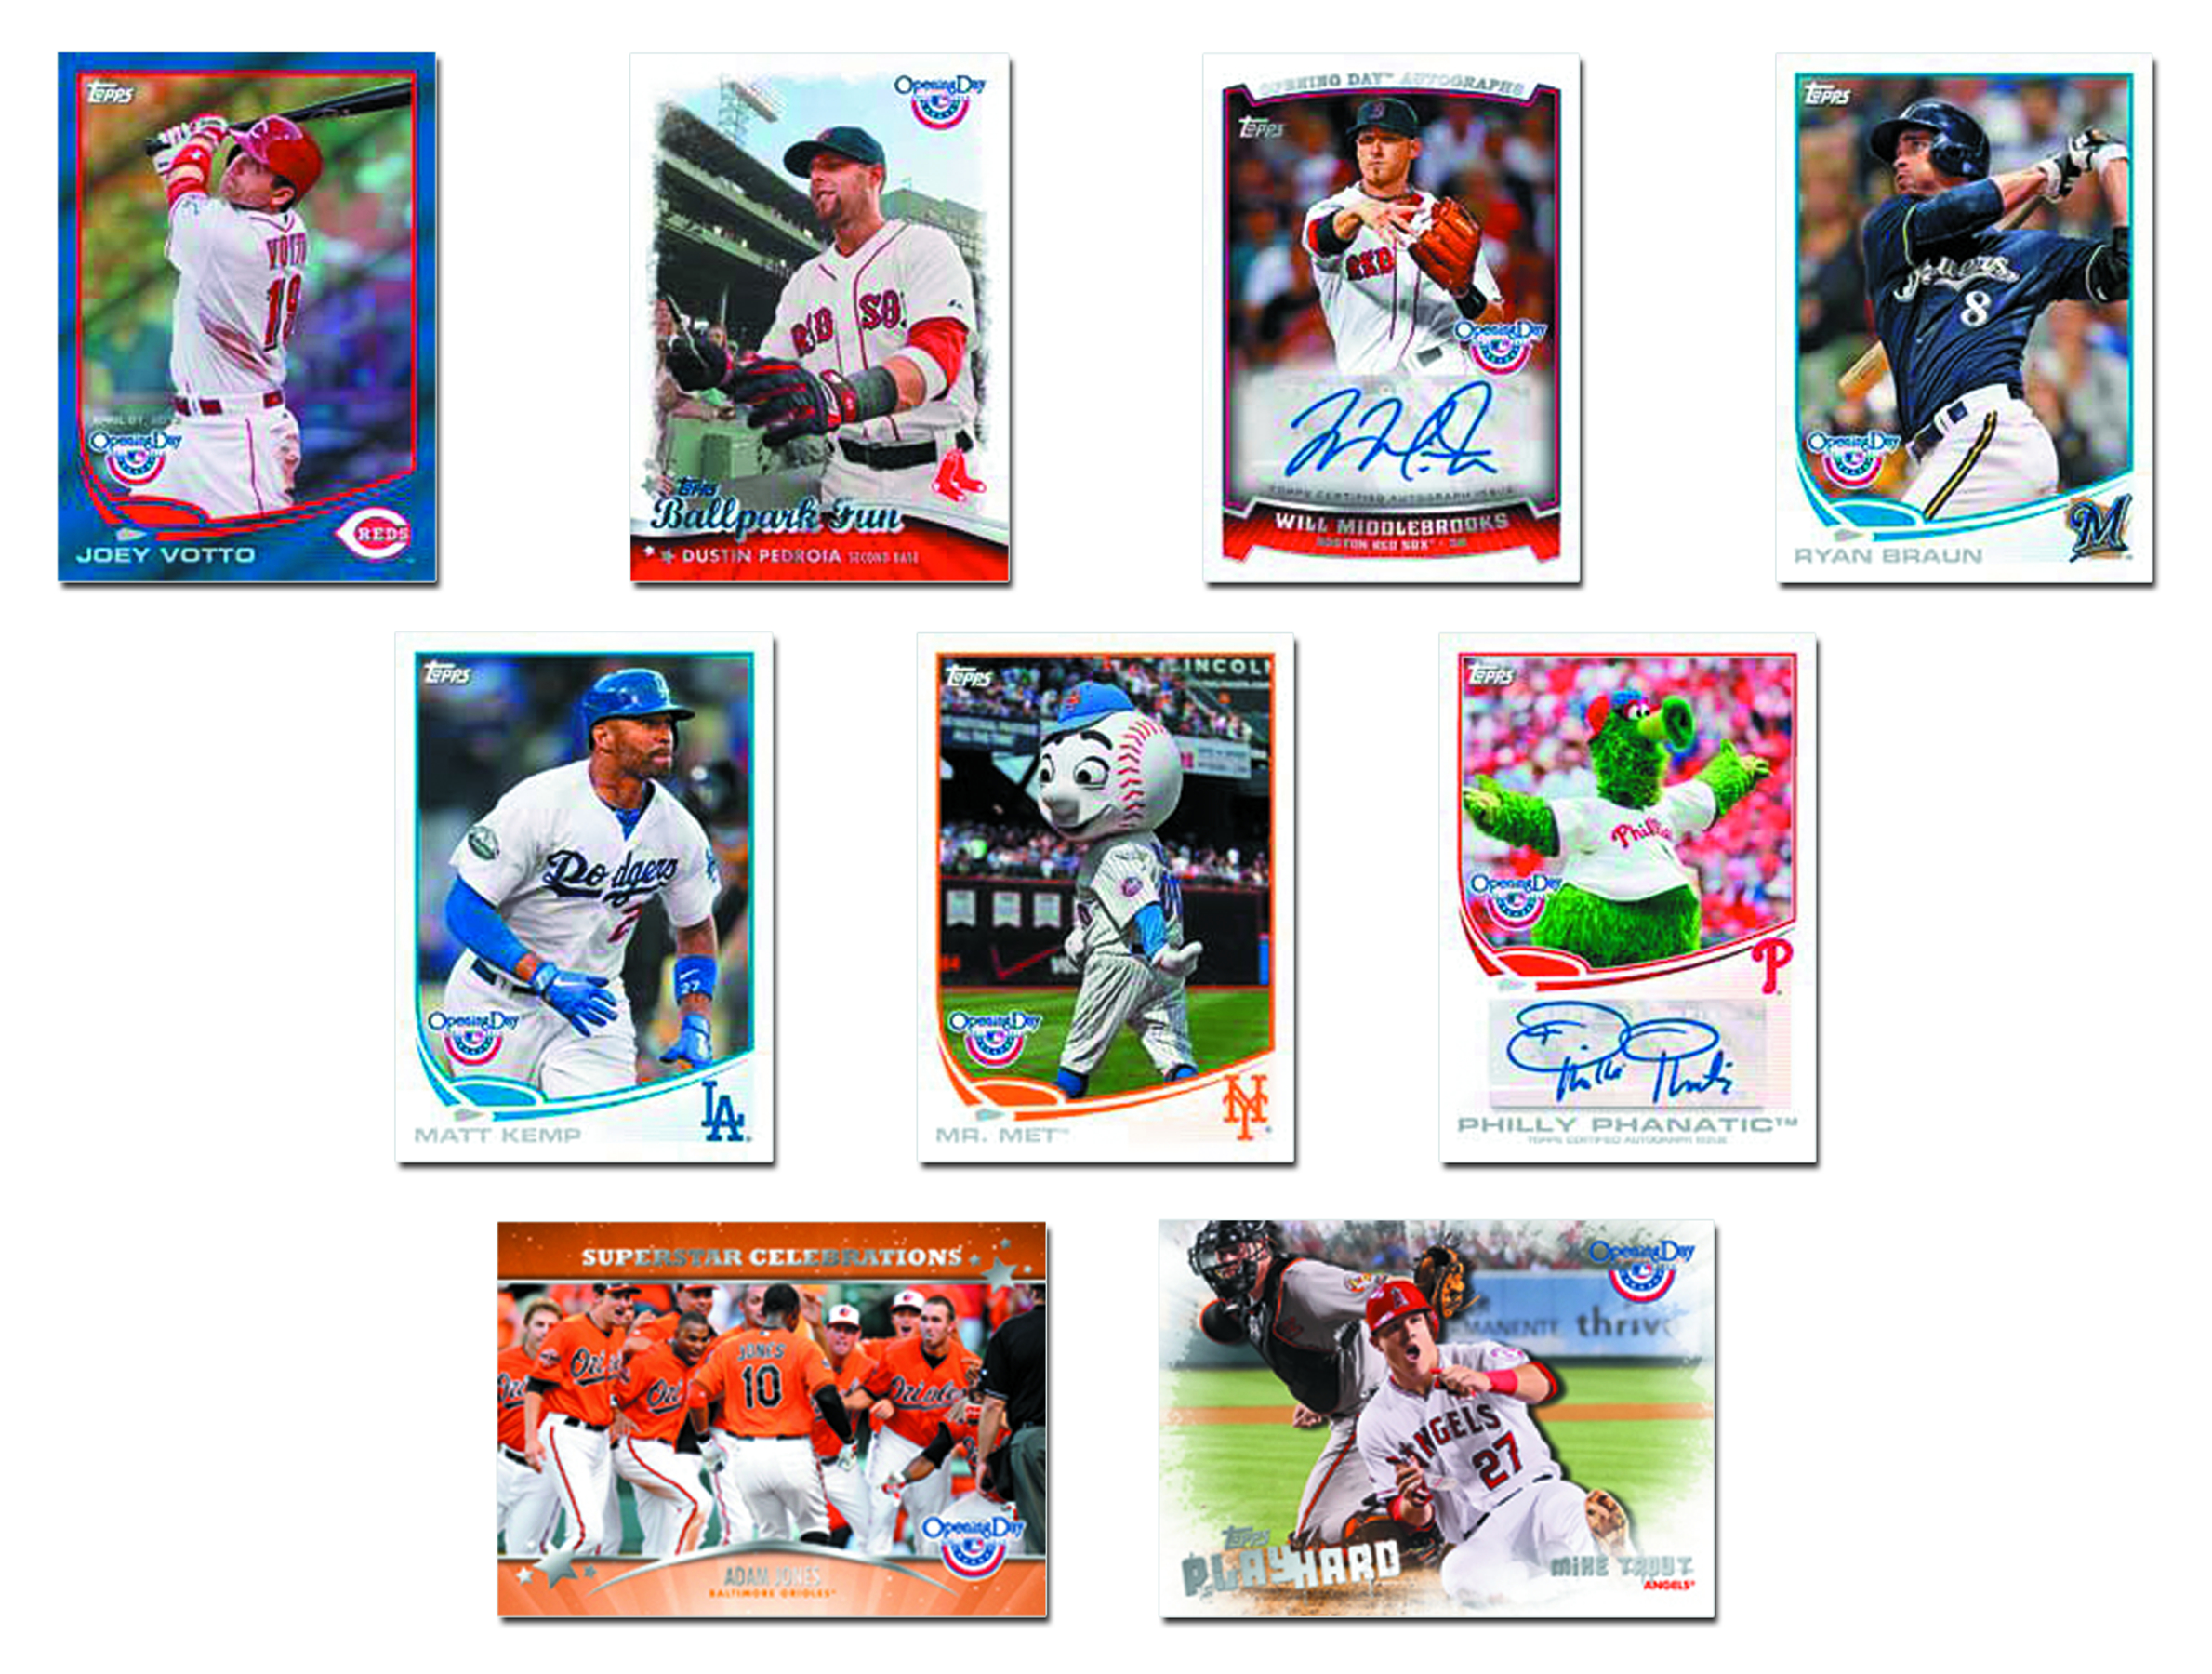 TOPPS 2013 OPENING DAY BASEBALL T/C BOX